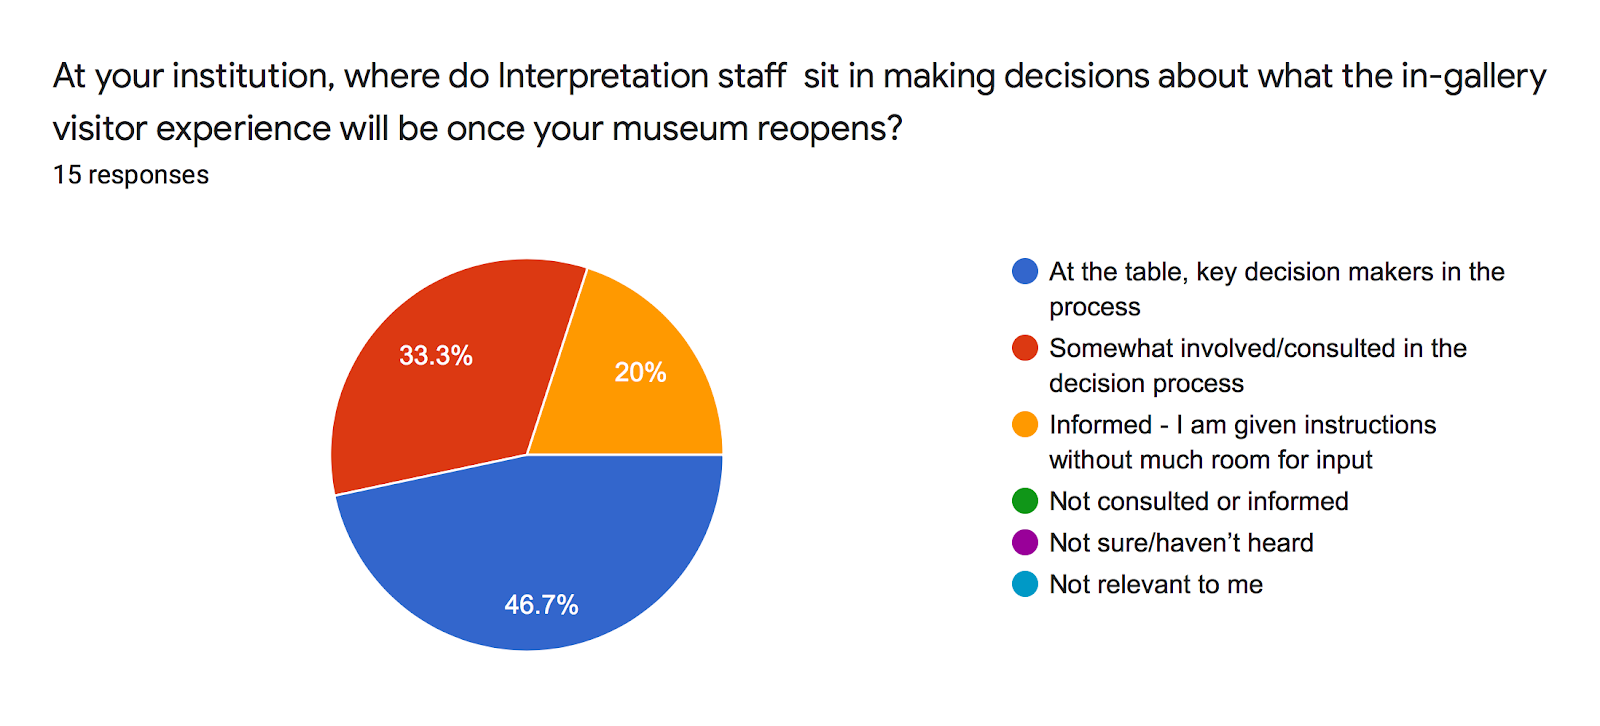 Forms response chart. Question title: At your institution, where do Interpretation staff  sit in making decisions about what the in-gallery visitor experience will be once your museum reopens?. Number of responses: 15 responses.